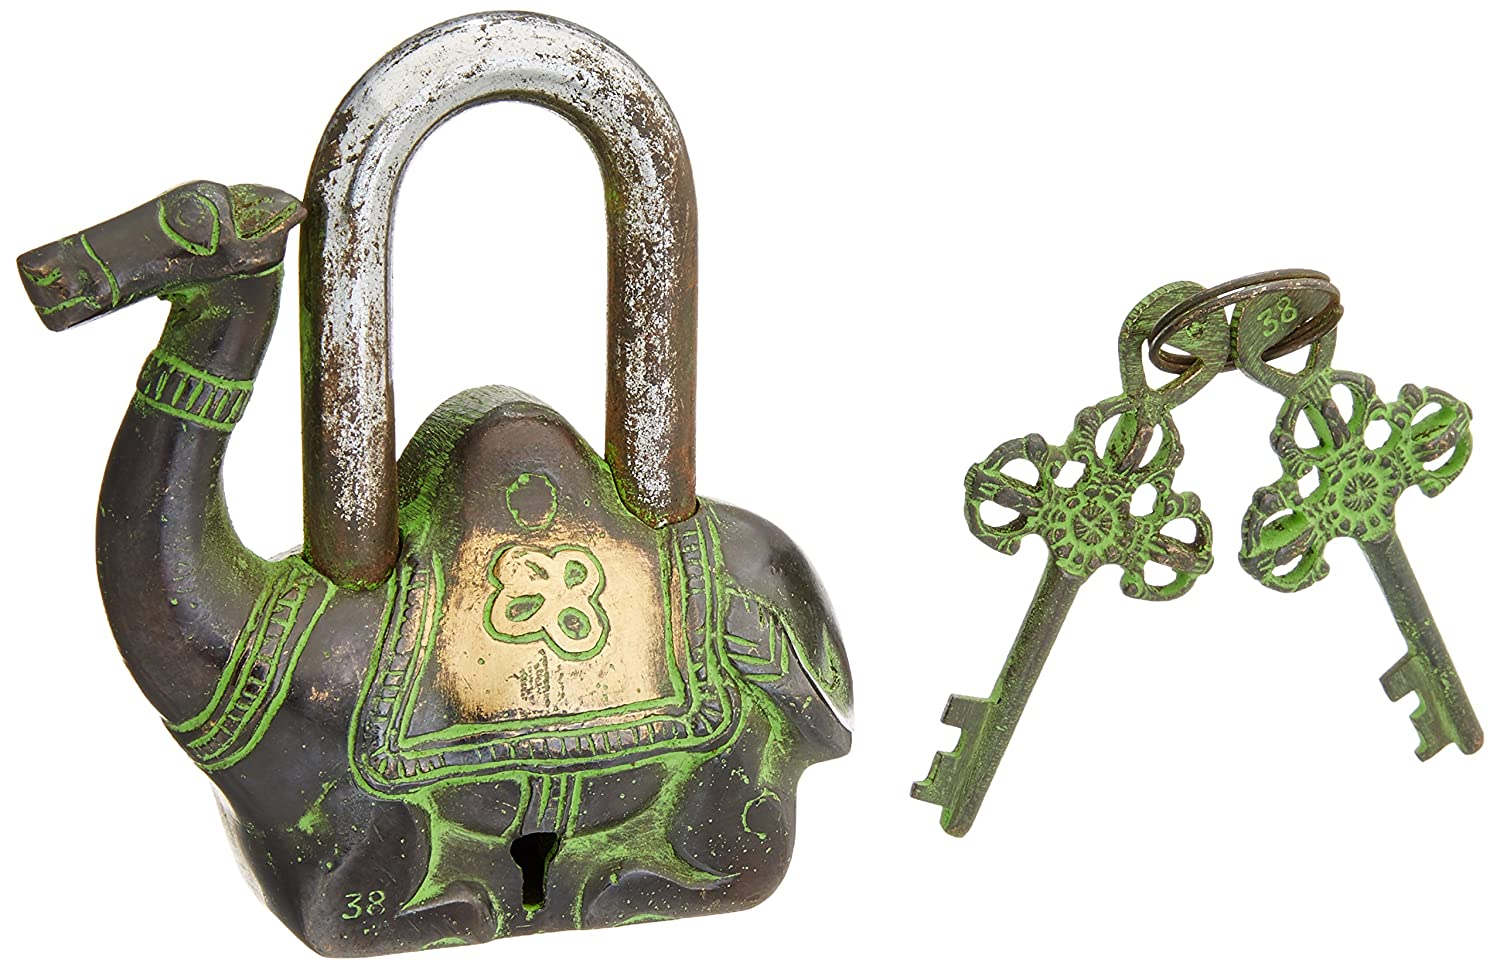 Exotic India Camel Shape Antique Green Look Functional Metal Pad Lock with 2 Keys